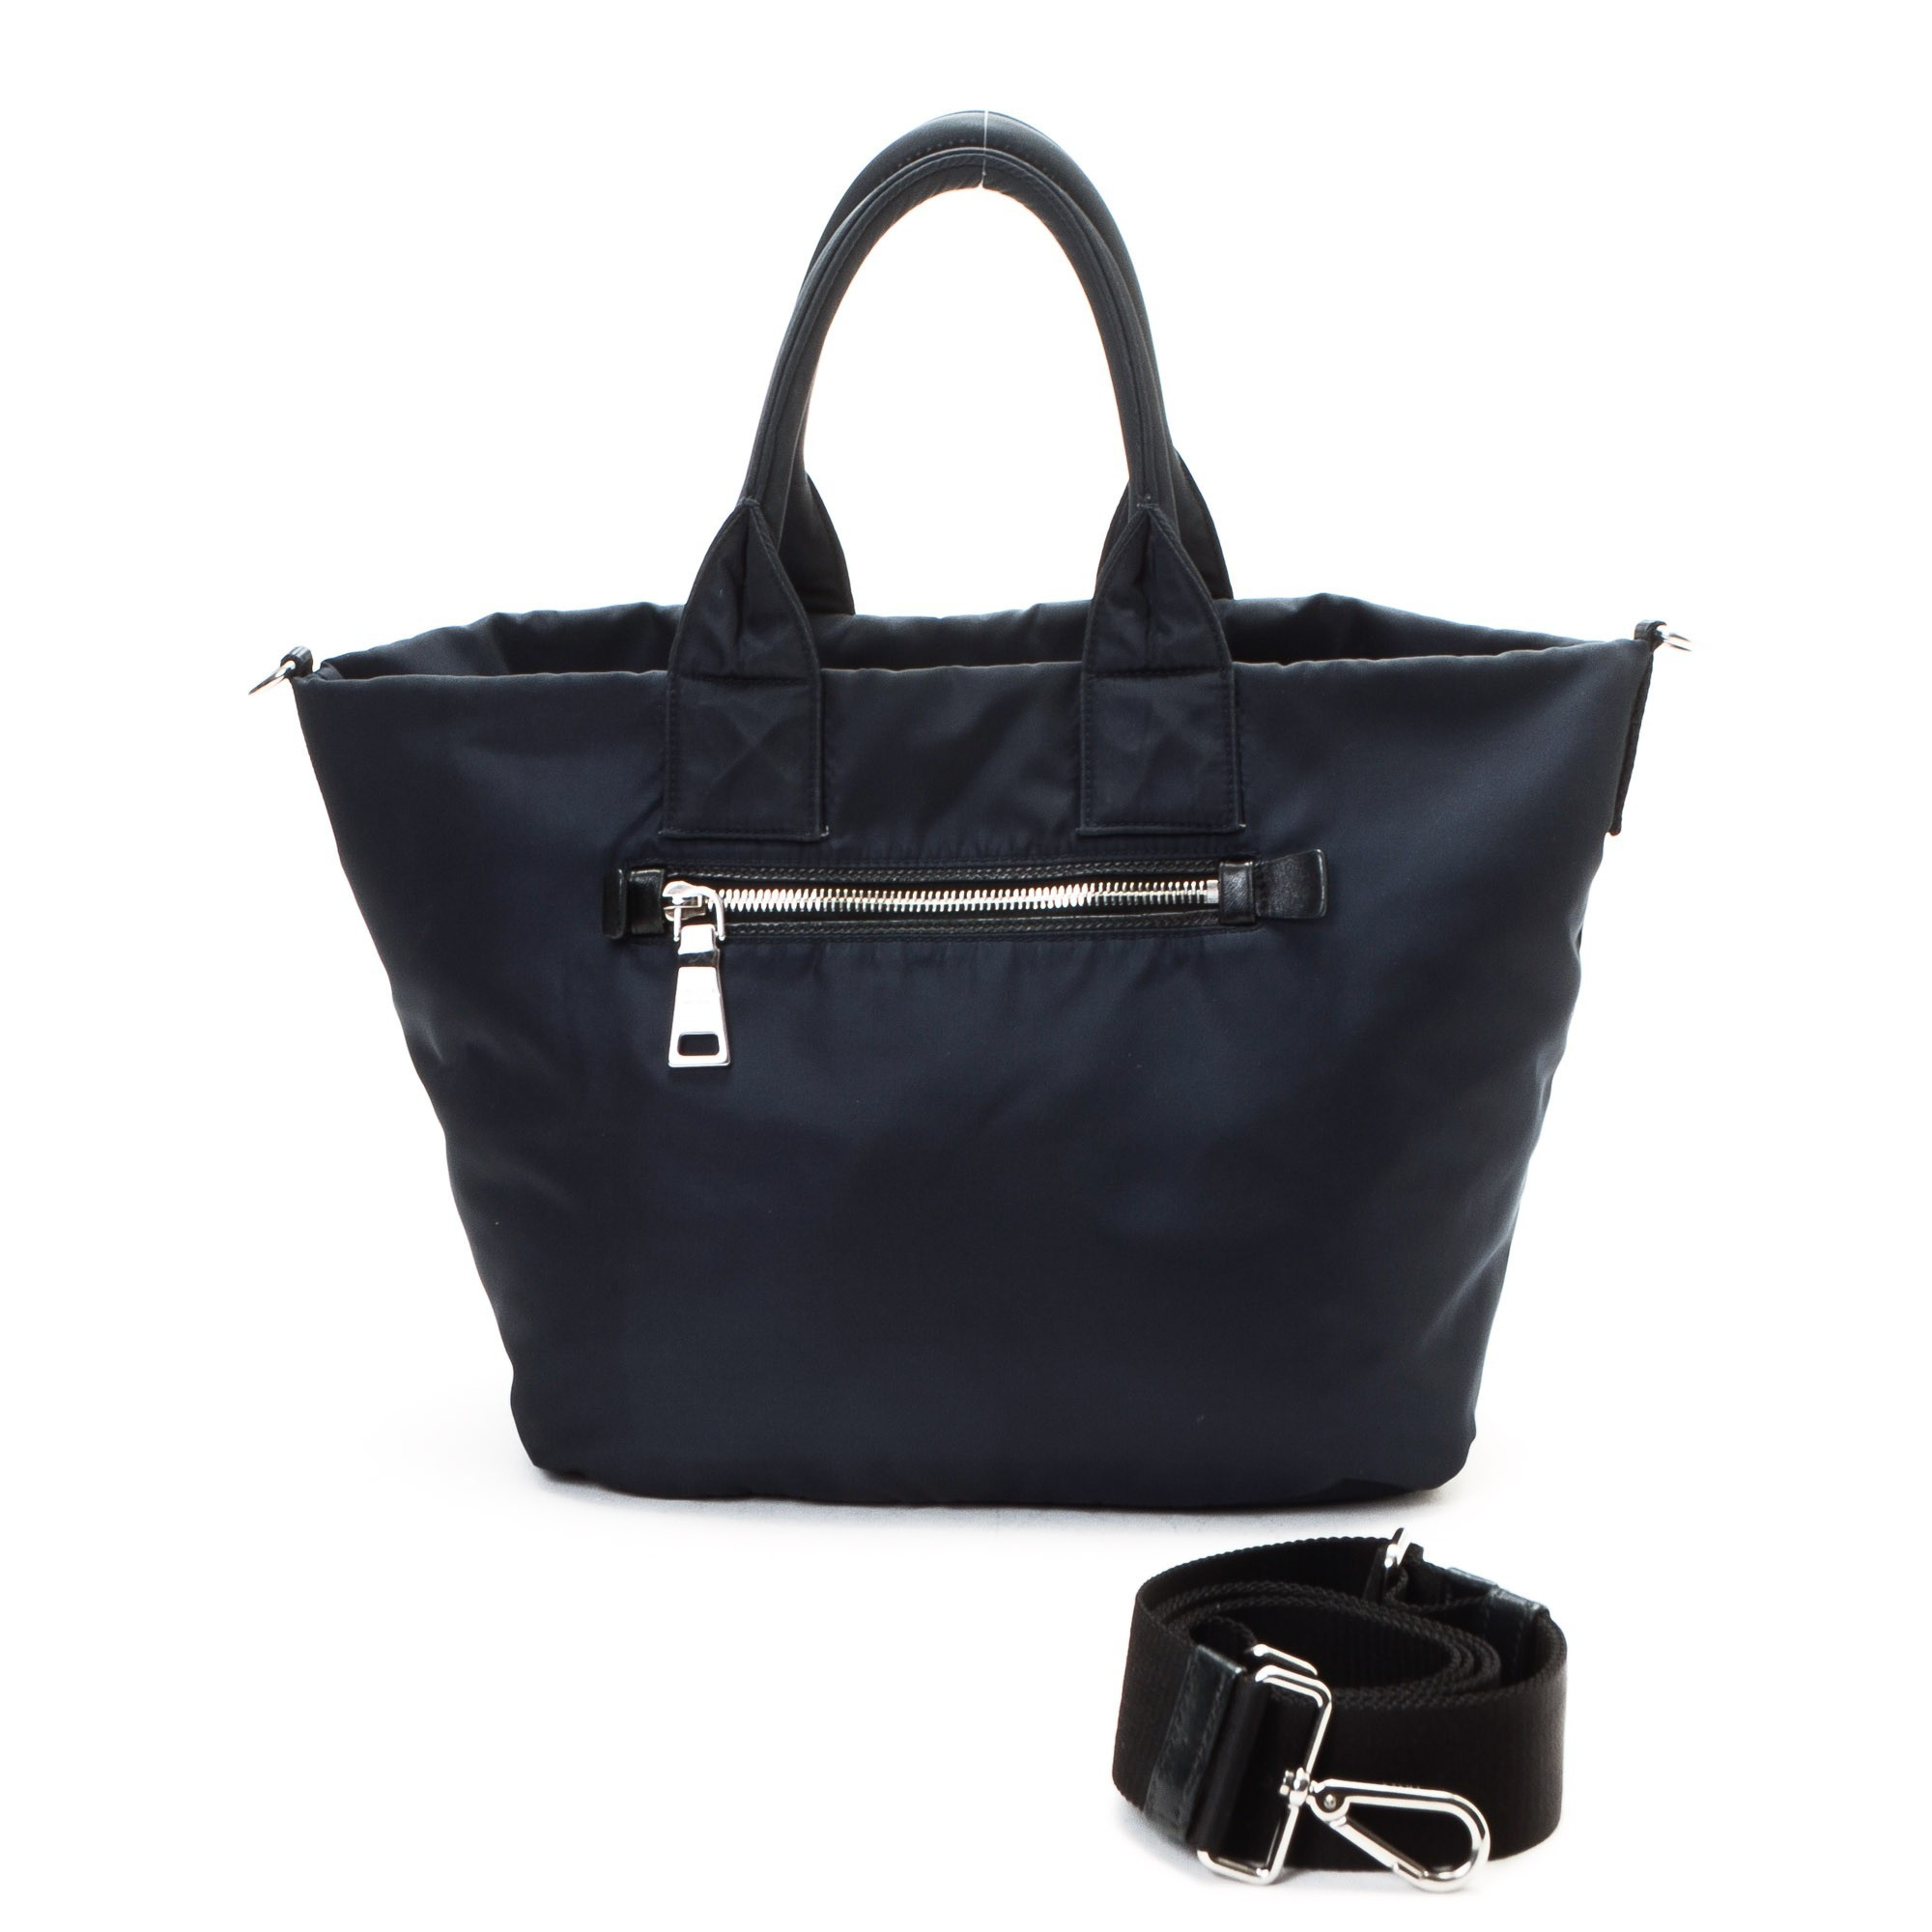 replica prada handbags sale - Prada Tessuto Two Way Bag Nylon Tote - LXR\u0026amp;CO Vintage Luxury